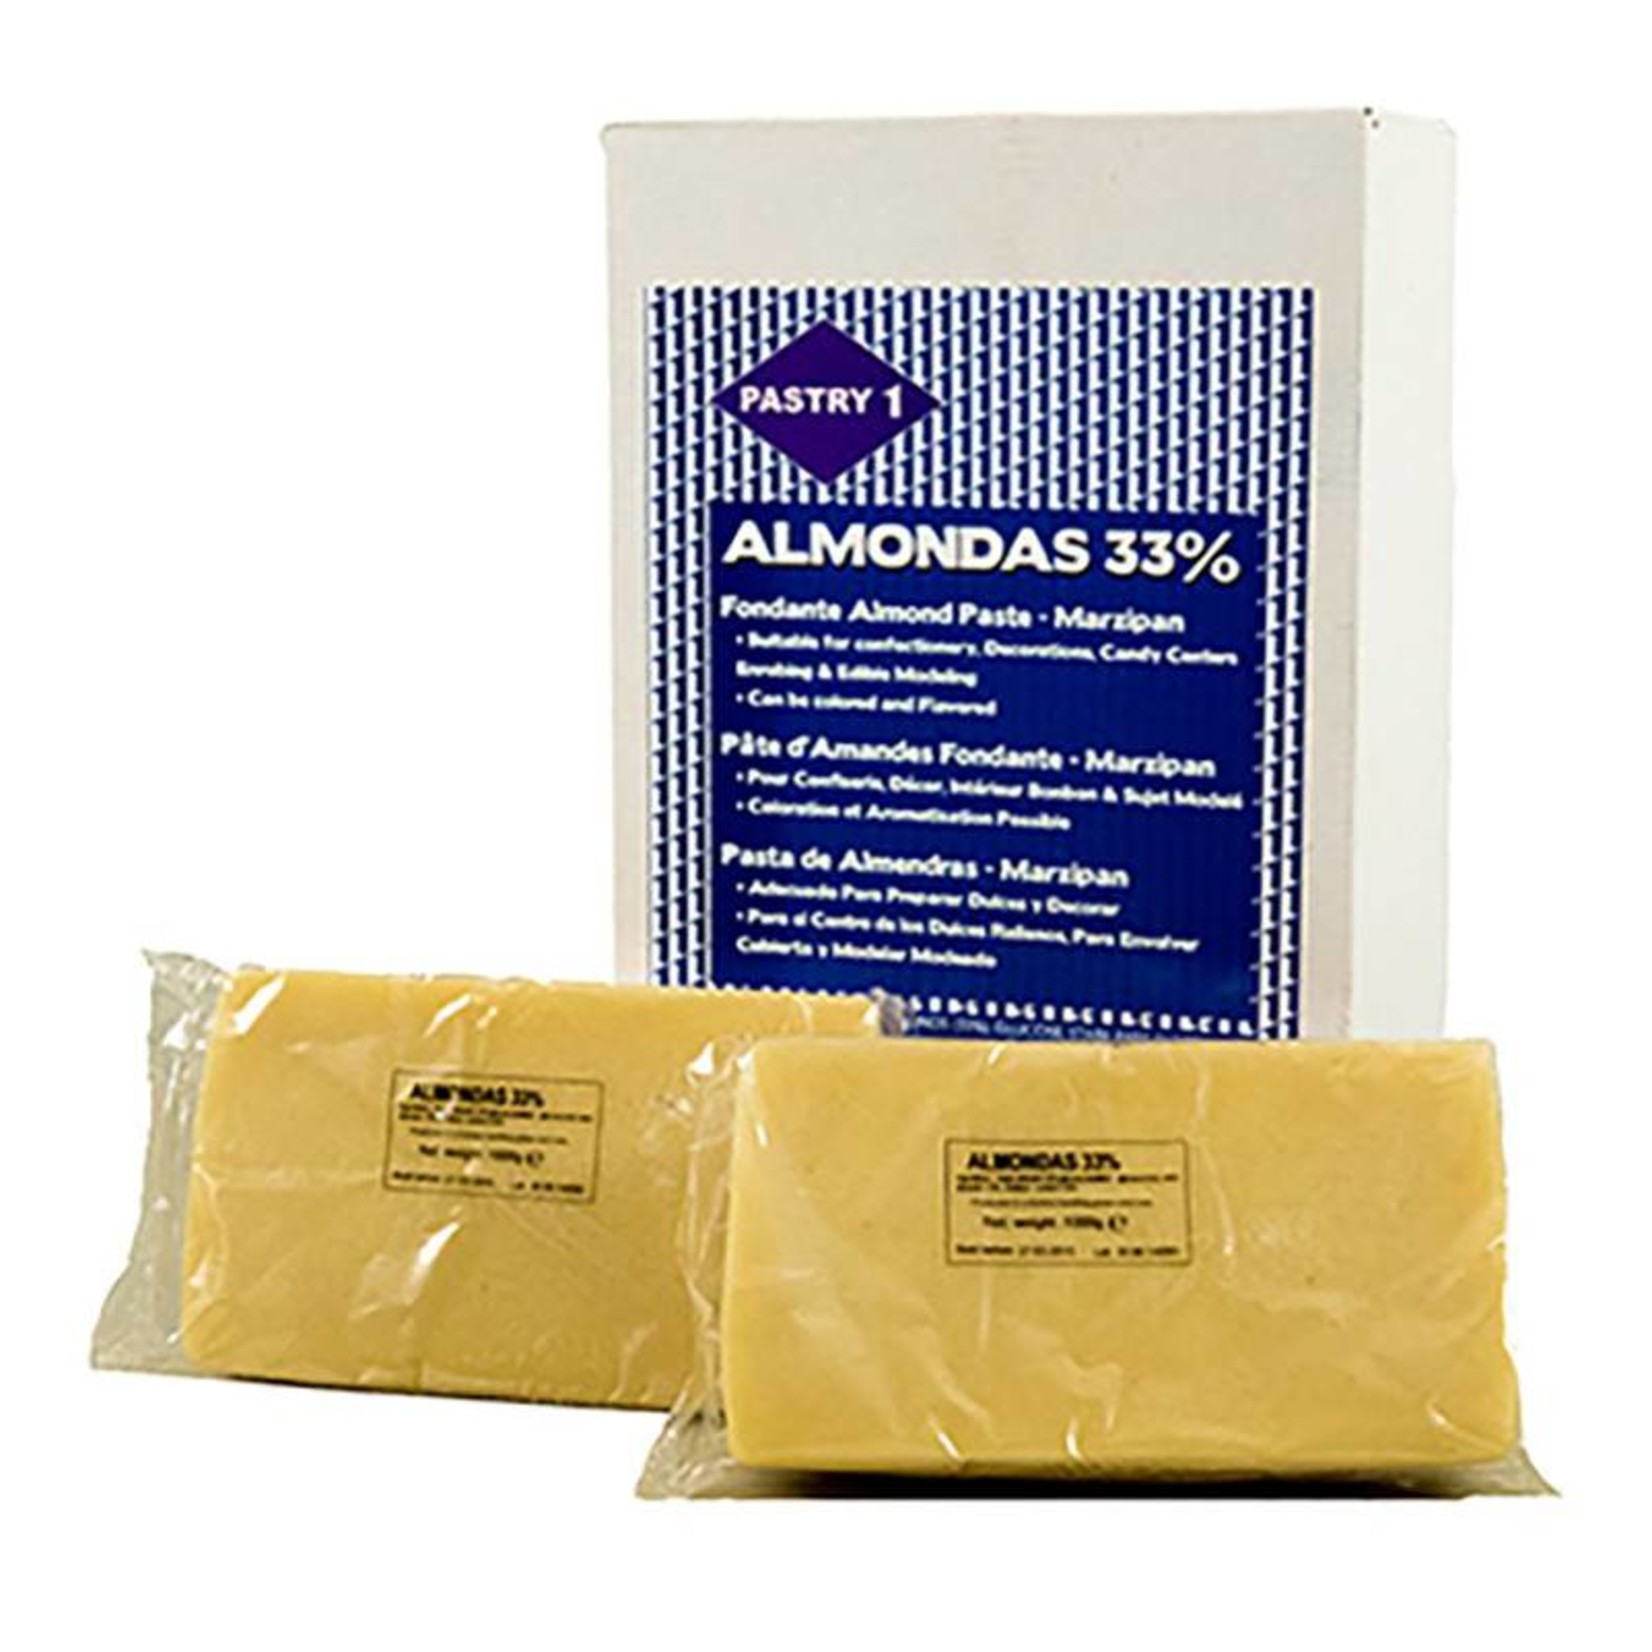 Pastry 1 Pastry 1 - Almond paste 33% - 2.2lb, PA4631